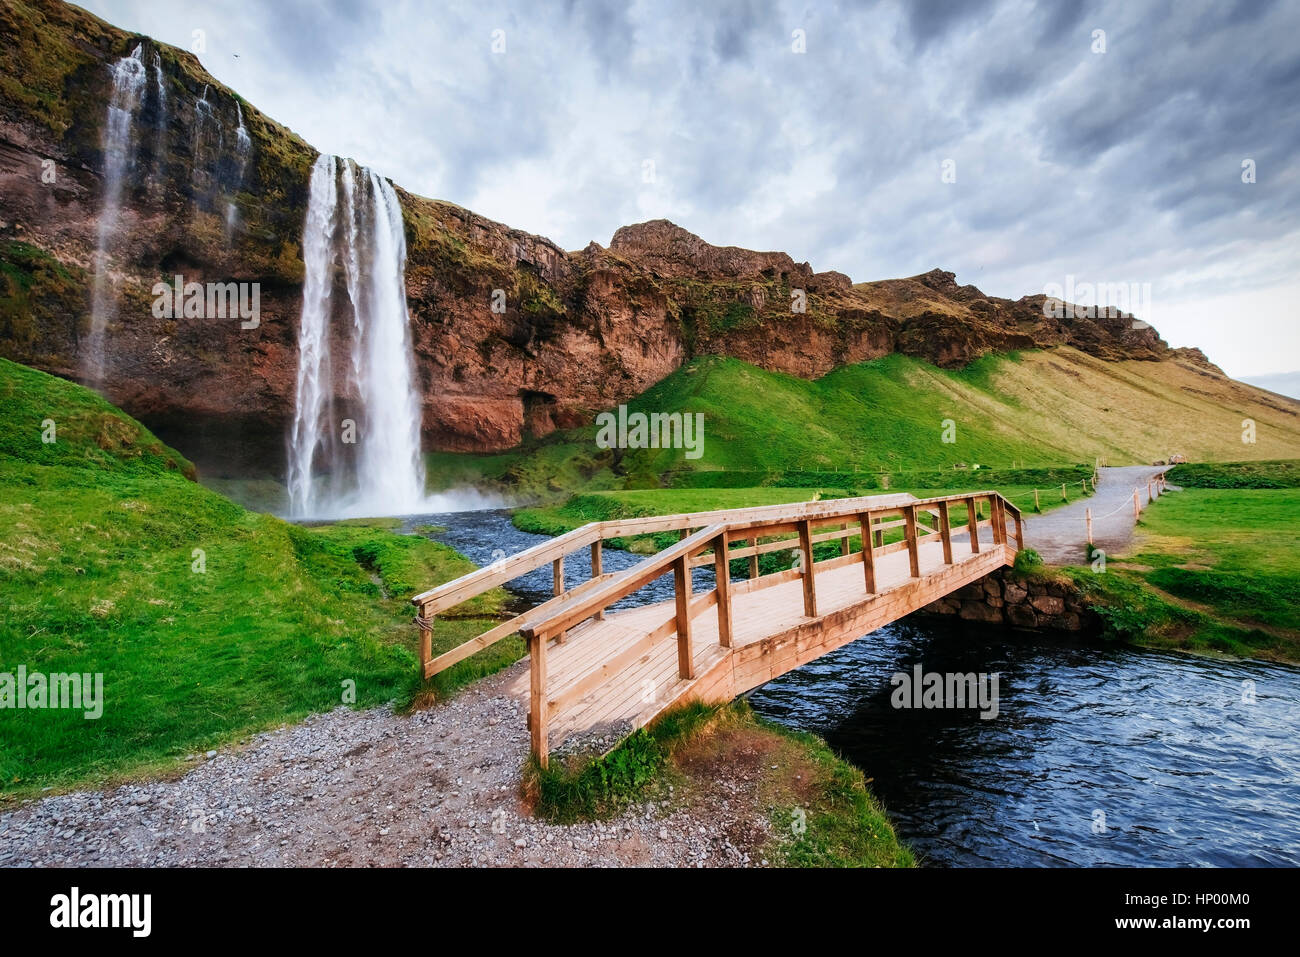 Seljalandfoss waterfall at sunset. Bridge over the river. Fantas - Stock Image